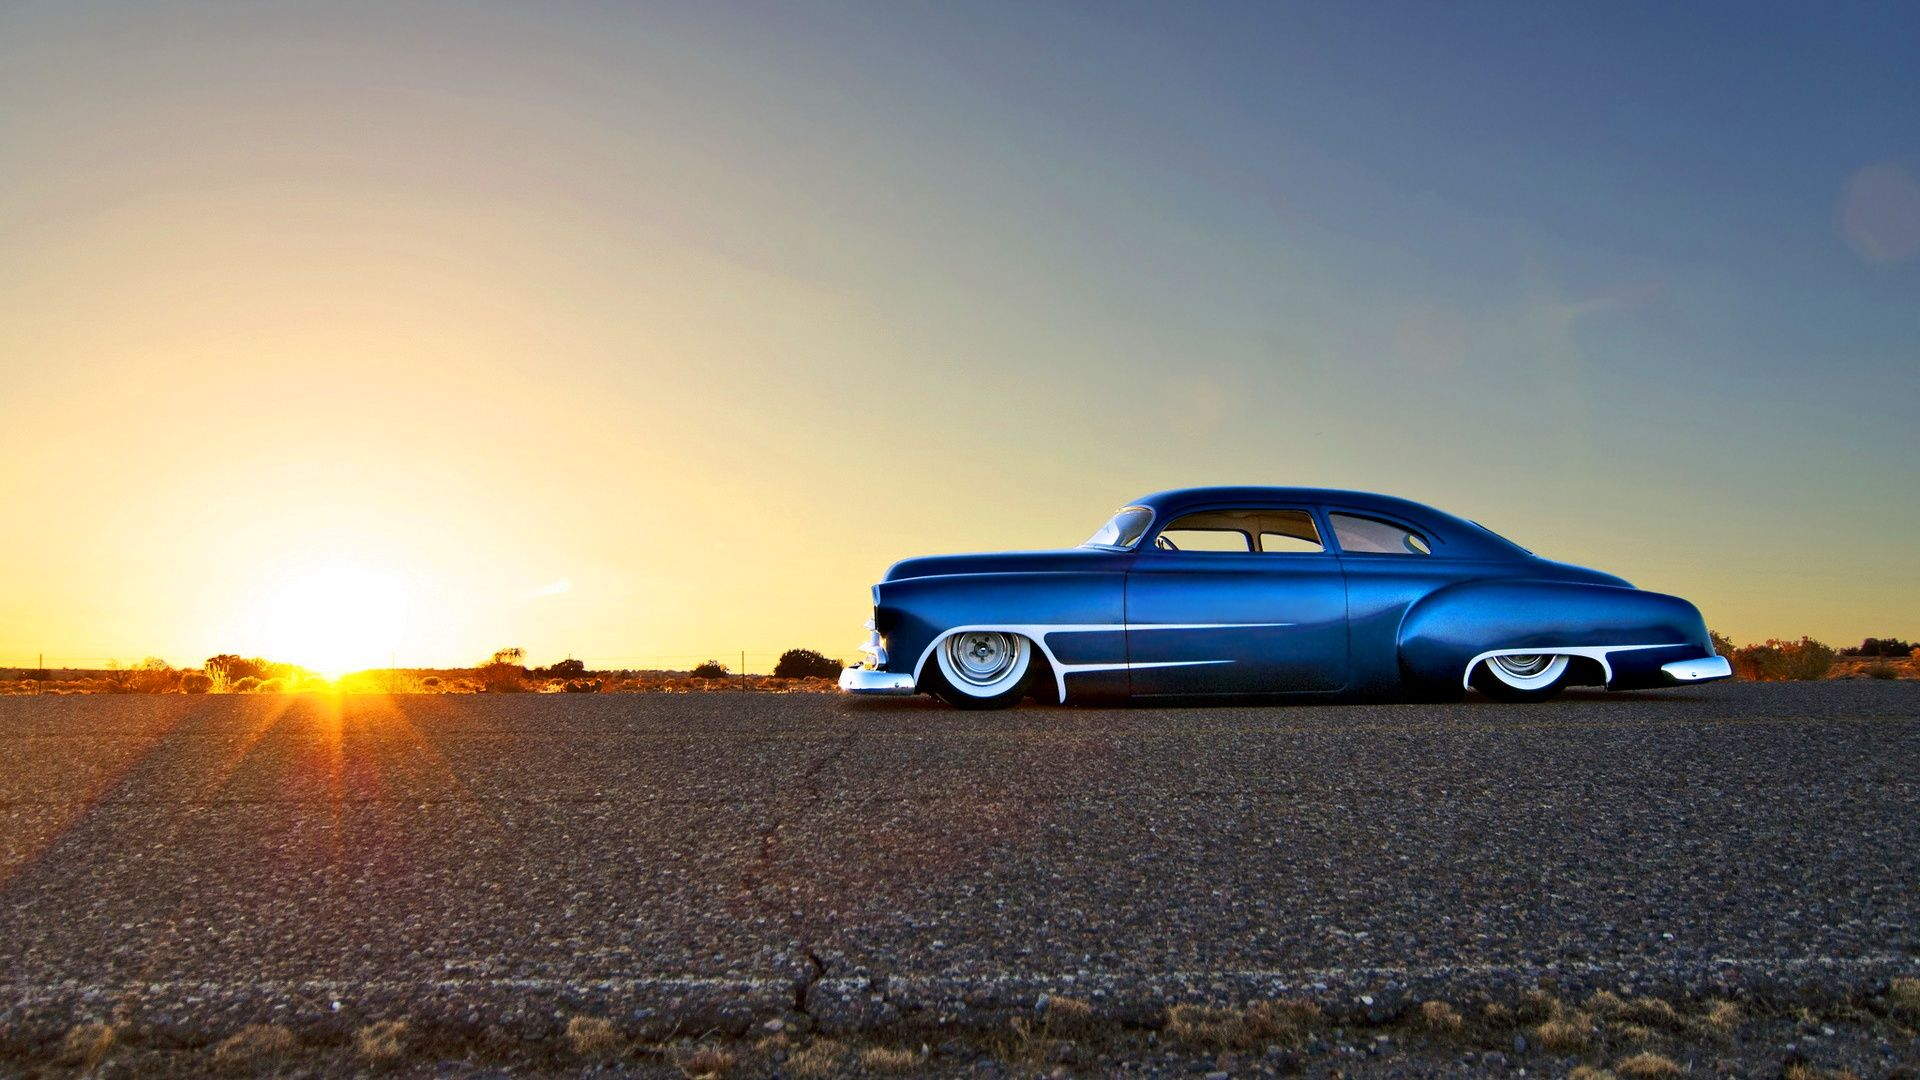 Chevy Classic Hot Rod Wallpaper